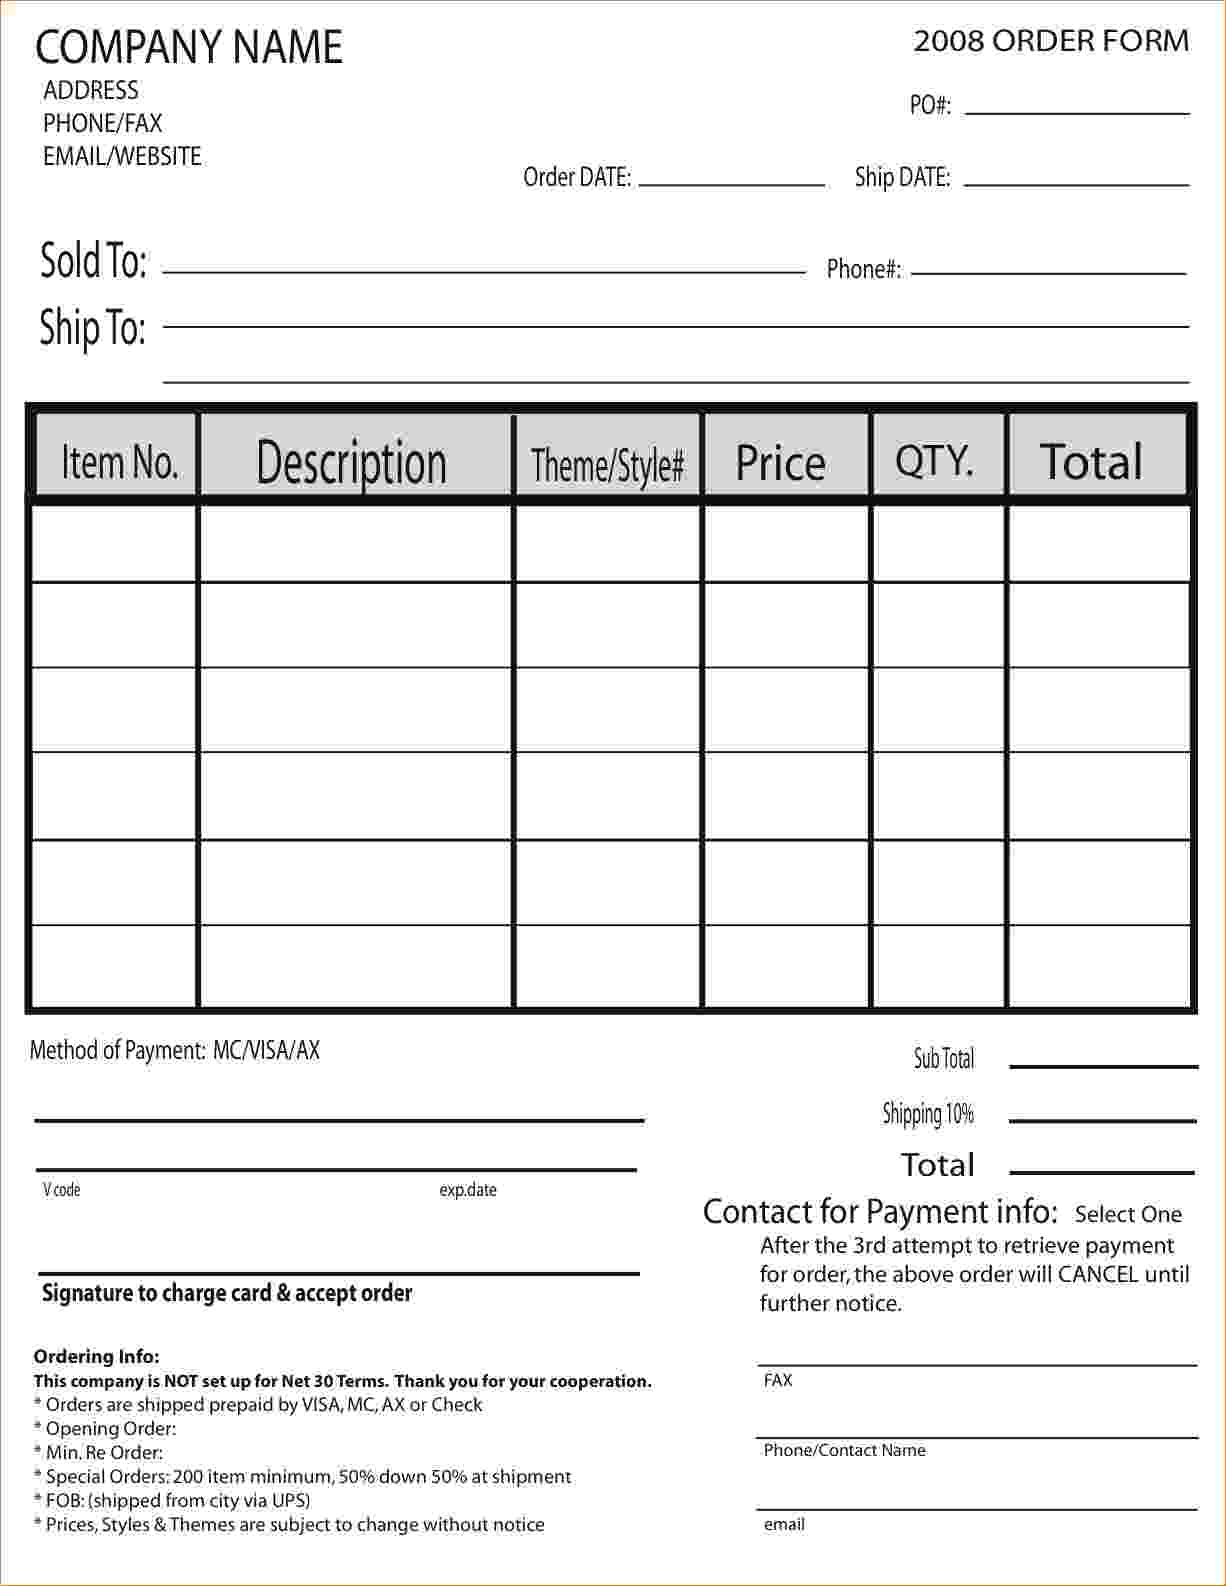 Sample Order Form | charlotte clergy coalition